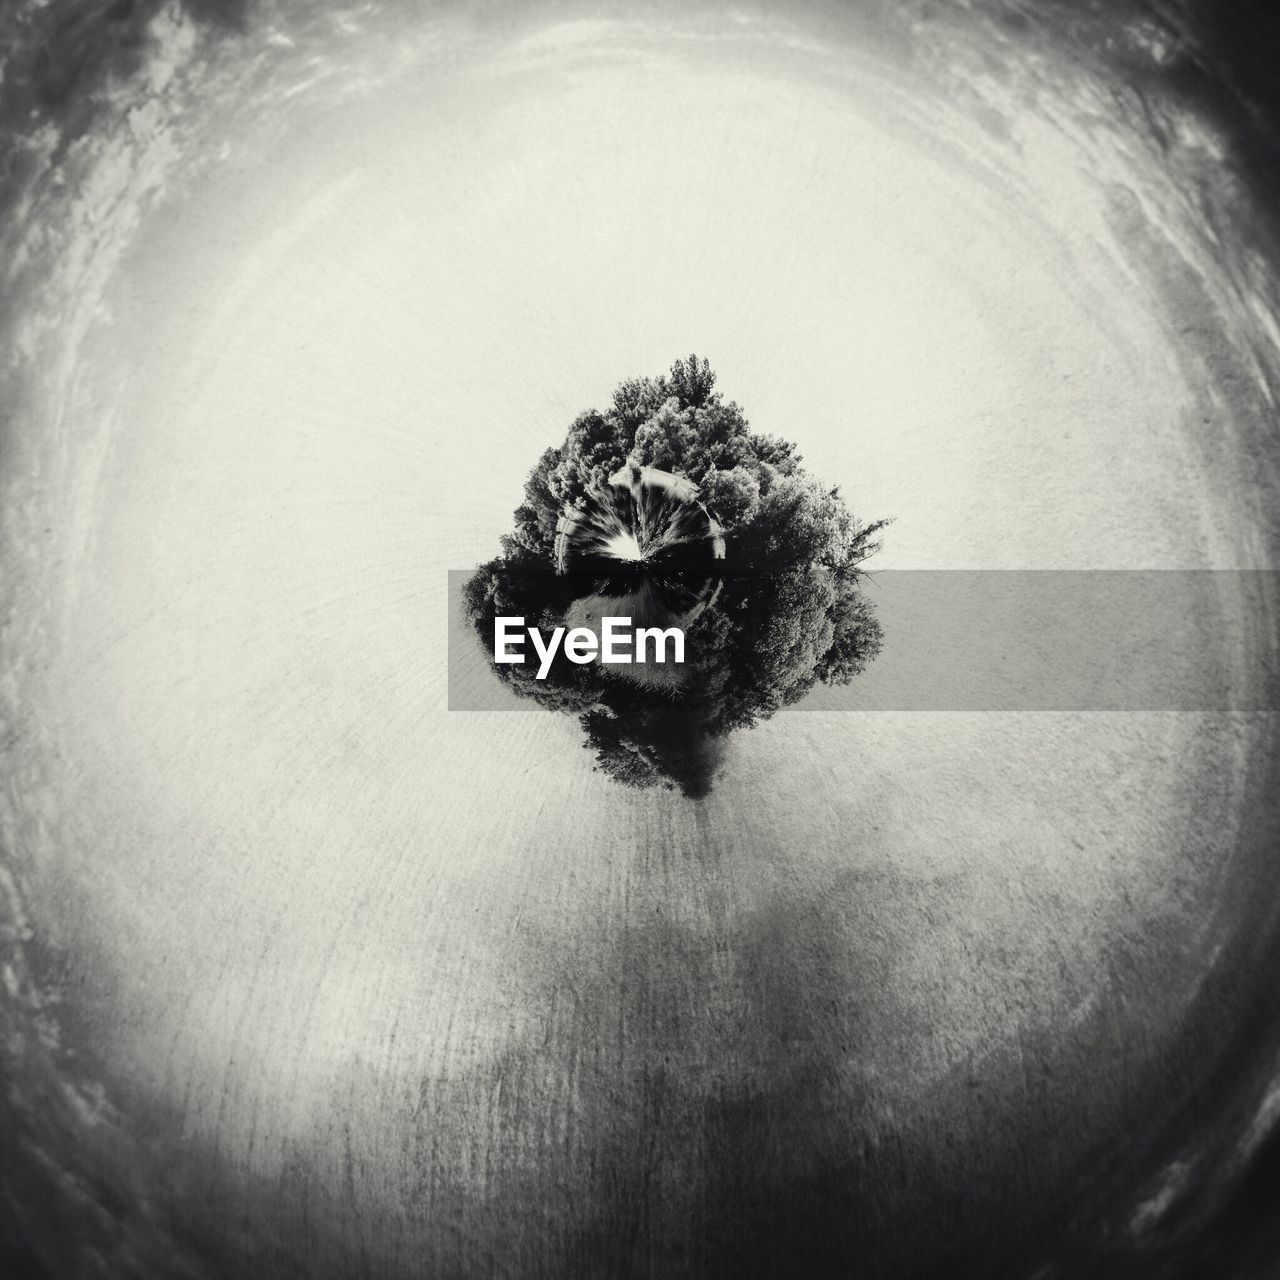 Digital composite image of trees and planet